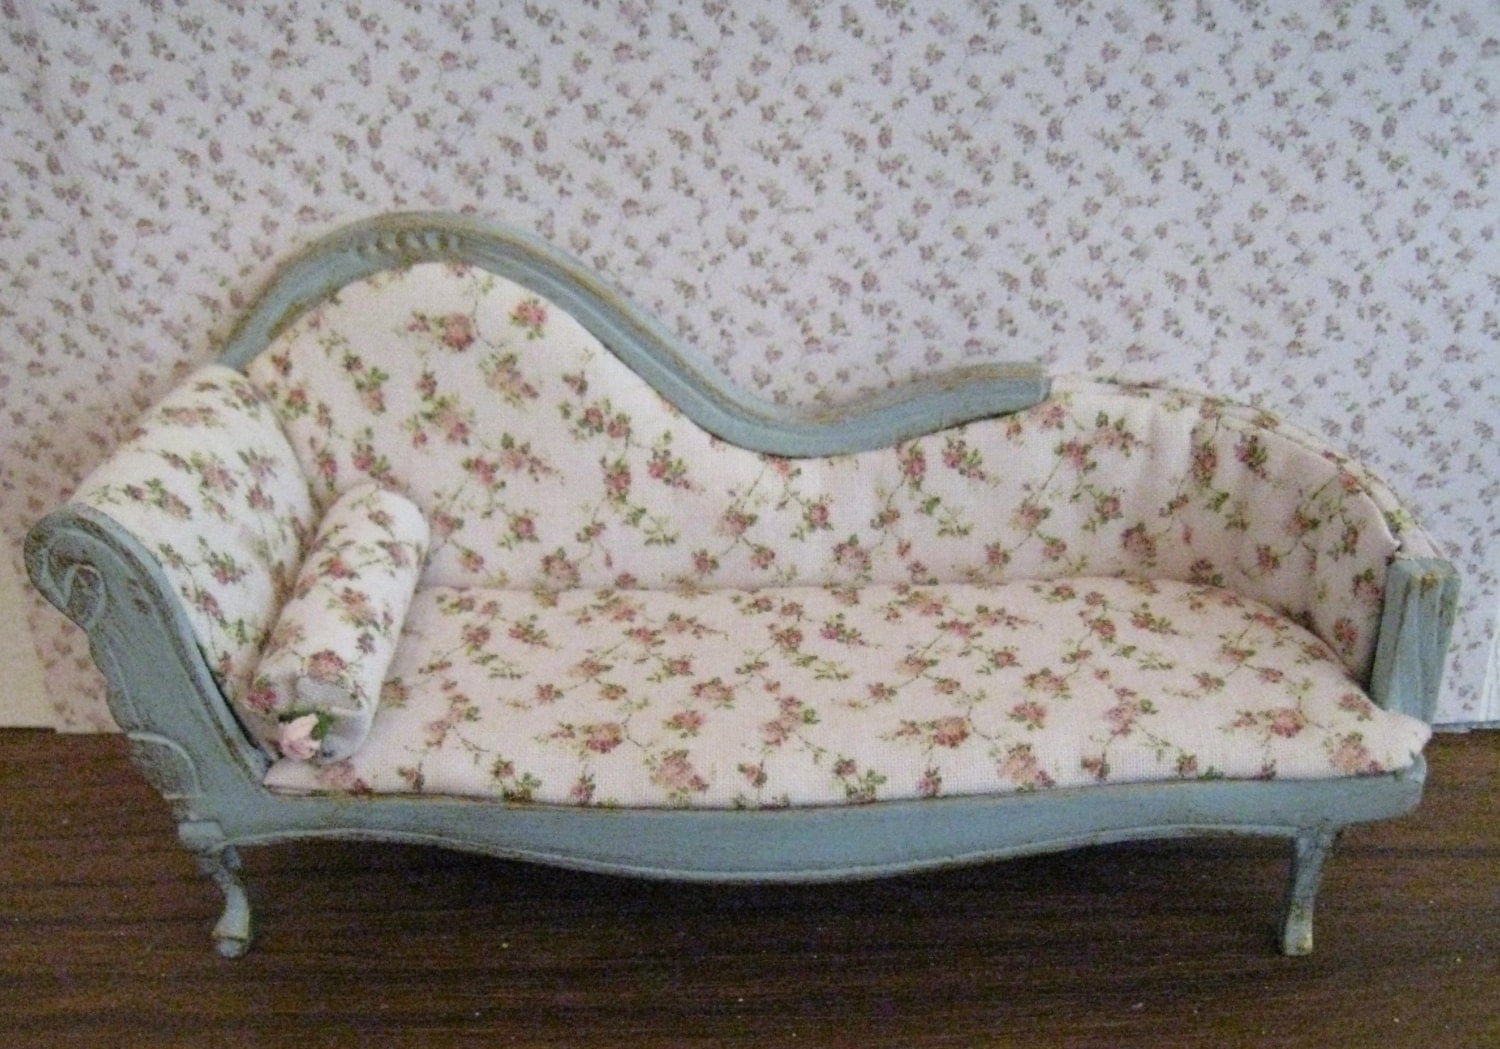 chaise ladies boudoir shabby chic a by insomesmallwayminis. Black Bedroom Furniture Sets. Home Design Ideas